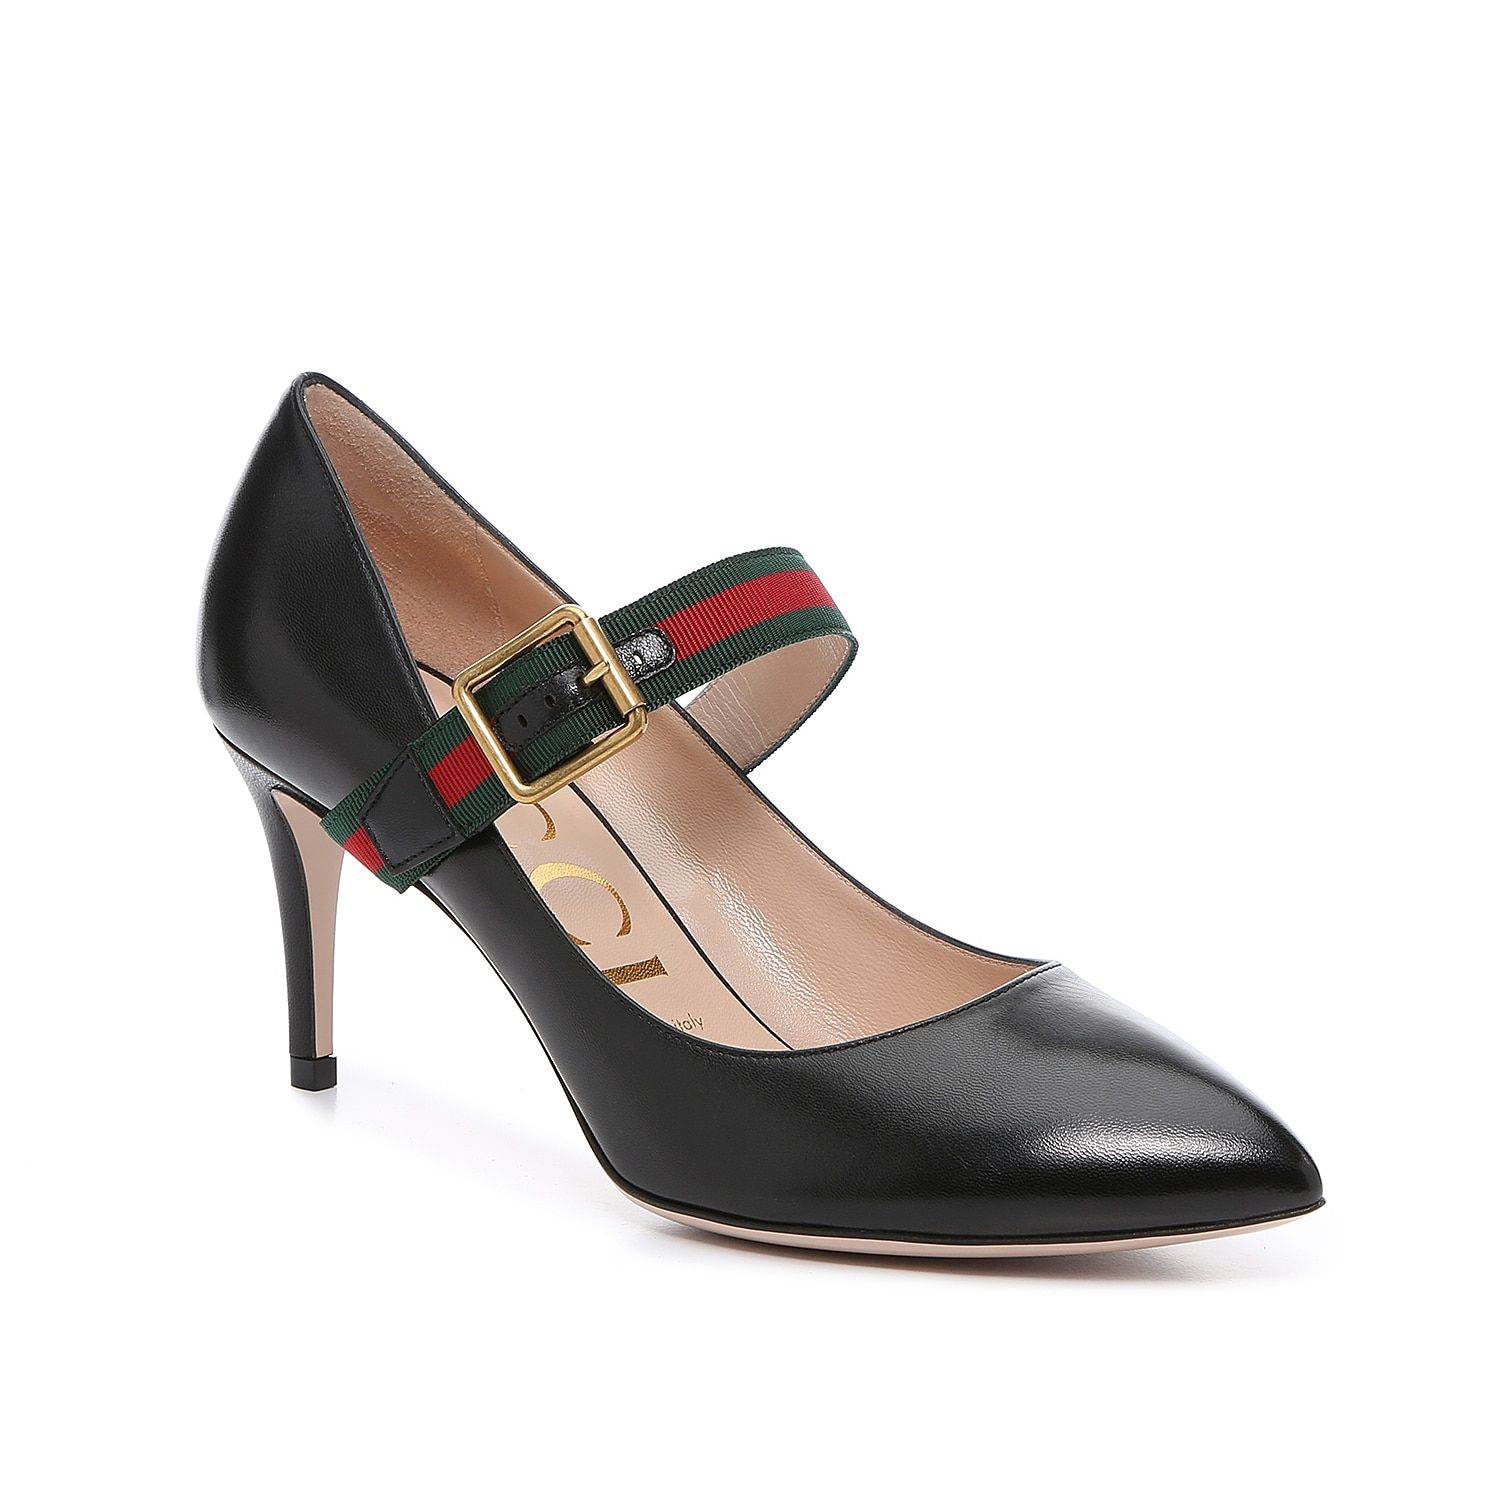 Gucci realizes the iconic Sylvie accessory line into an elegant Mary Jane pump. The signature grosgrain House Web stripe accentuates the buckle fastening and pays homage to the label\\\'s equestrian beginnings, while smooth and supple leather keeps these pumps simply timeless.   Made in Italy from carefully selected materials. To extend product life, protect from direct light, heat, and rain. Fill shoe with tissue paper to help maintain the shape and absorb humidity. Store in the provided flannel bag and structured shoe box.